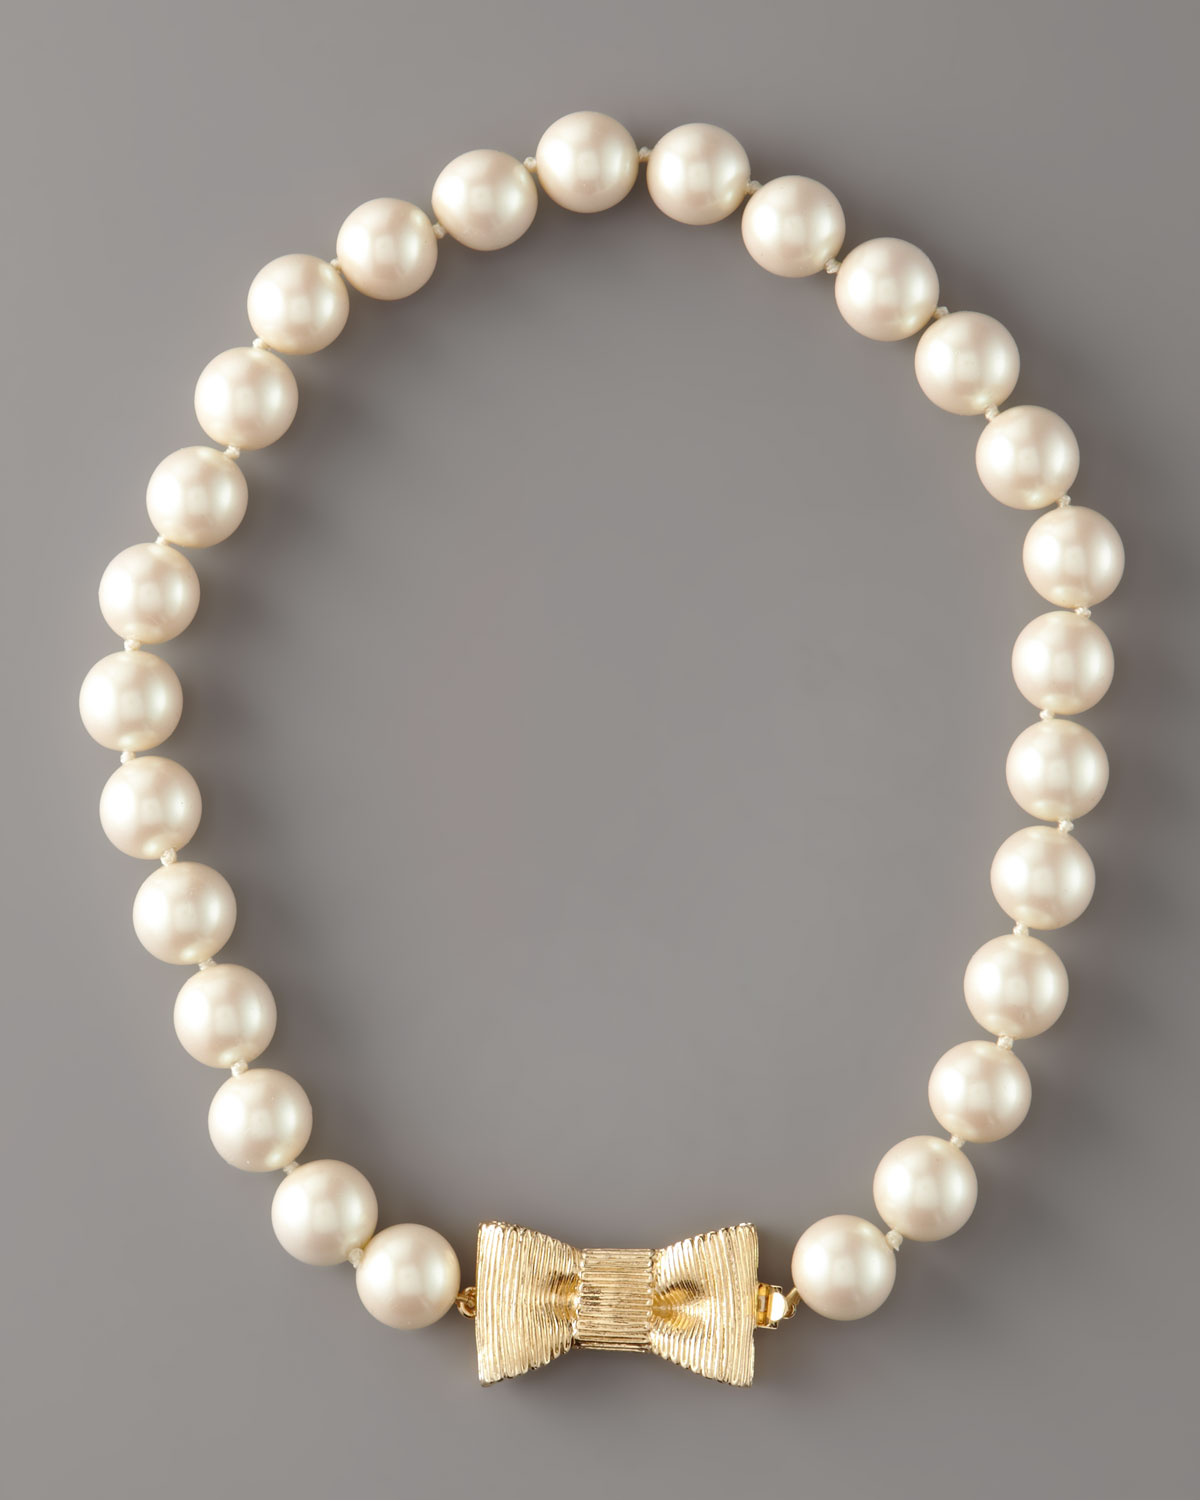 Kate Spade Pearl Bow Necklace: Kate Spade New York Bow- Clasp Pearl Necklace In